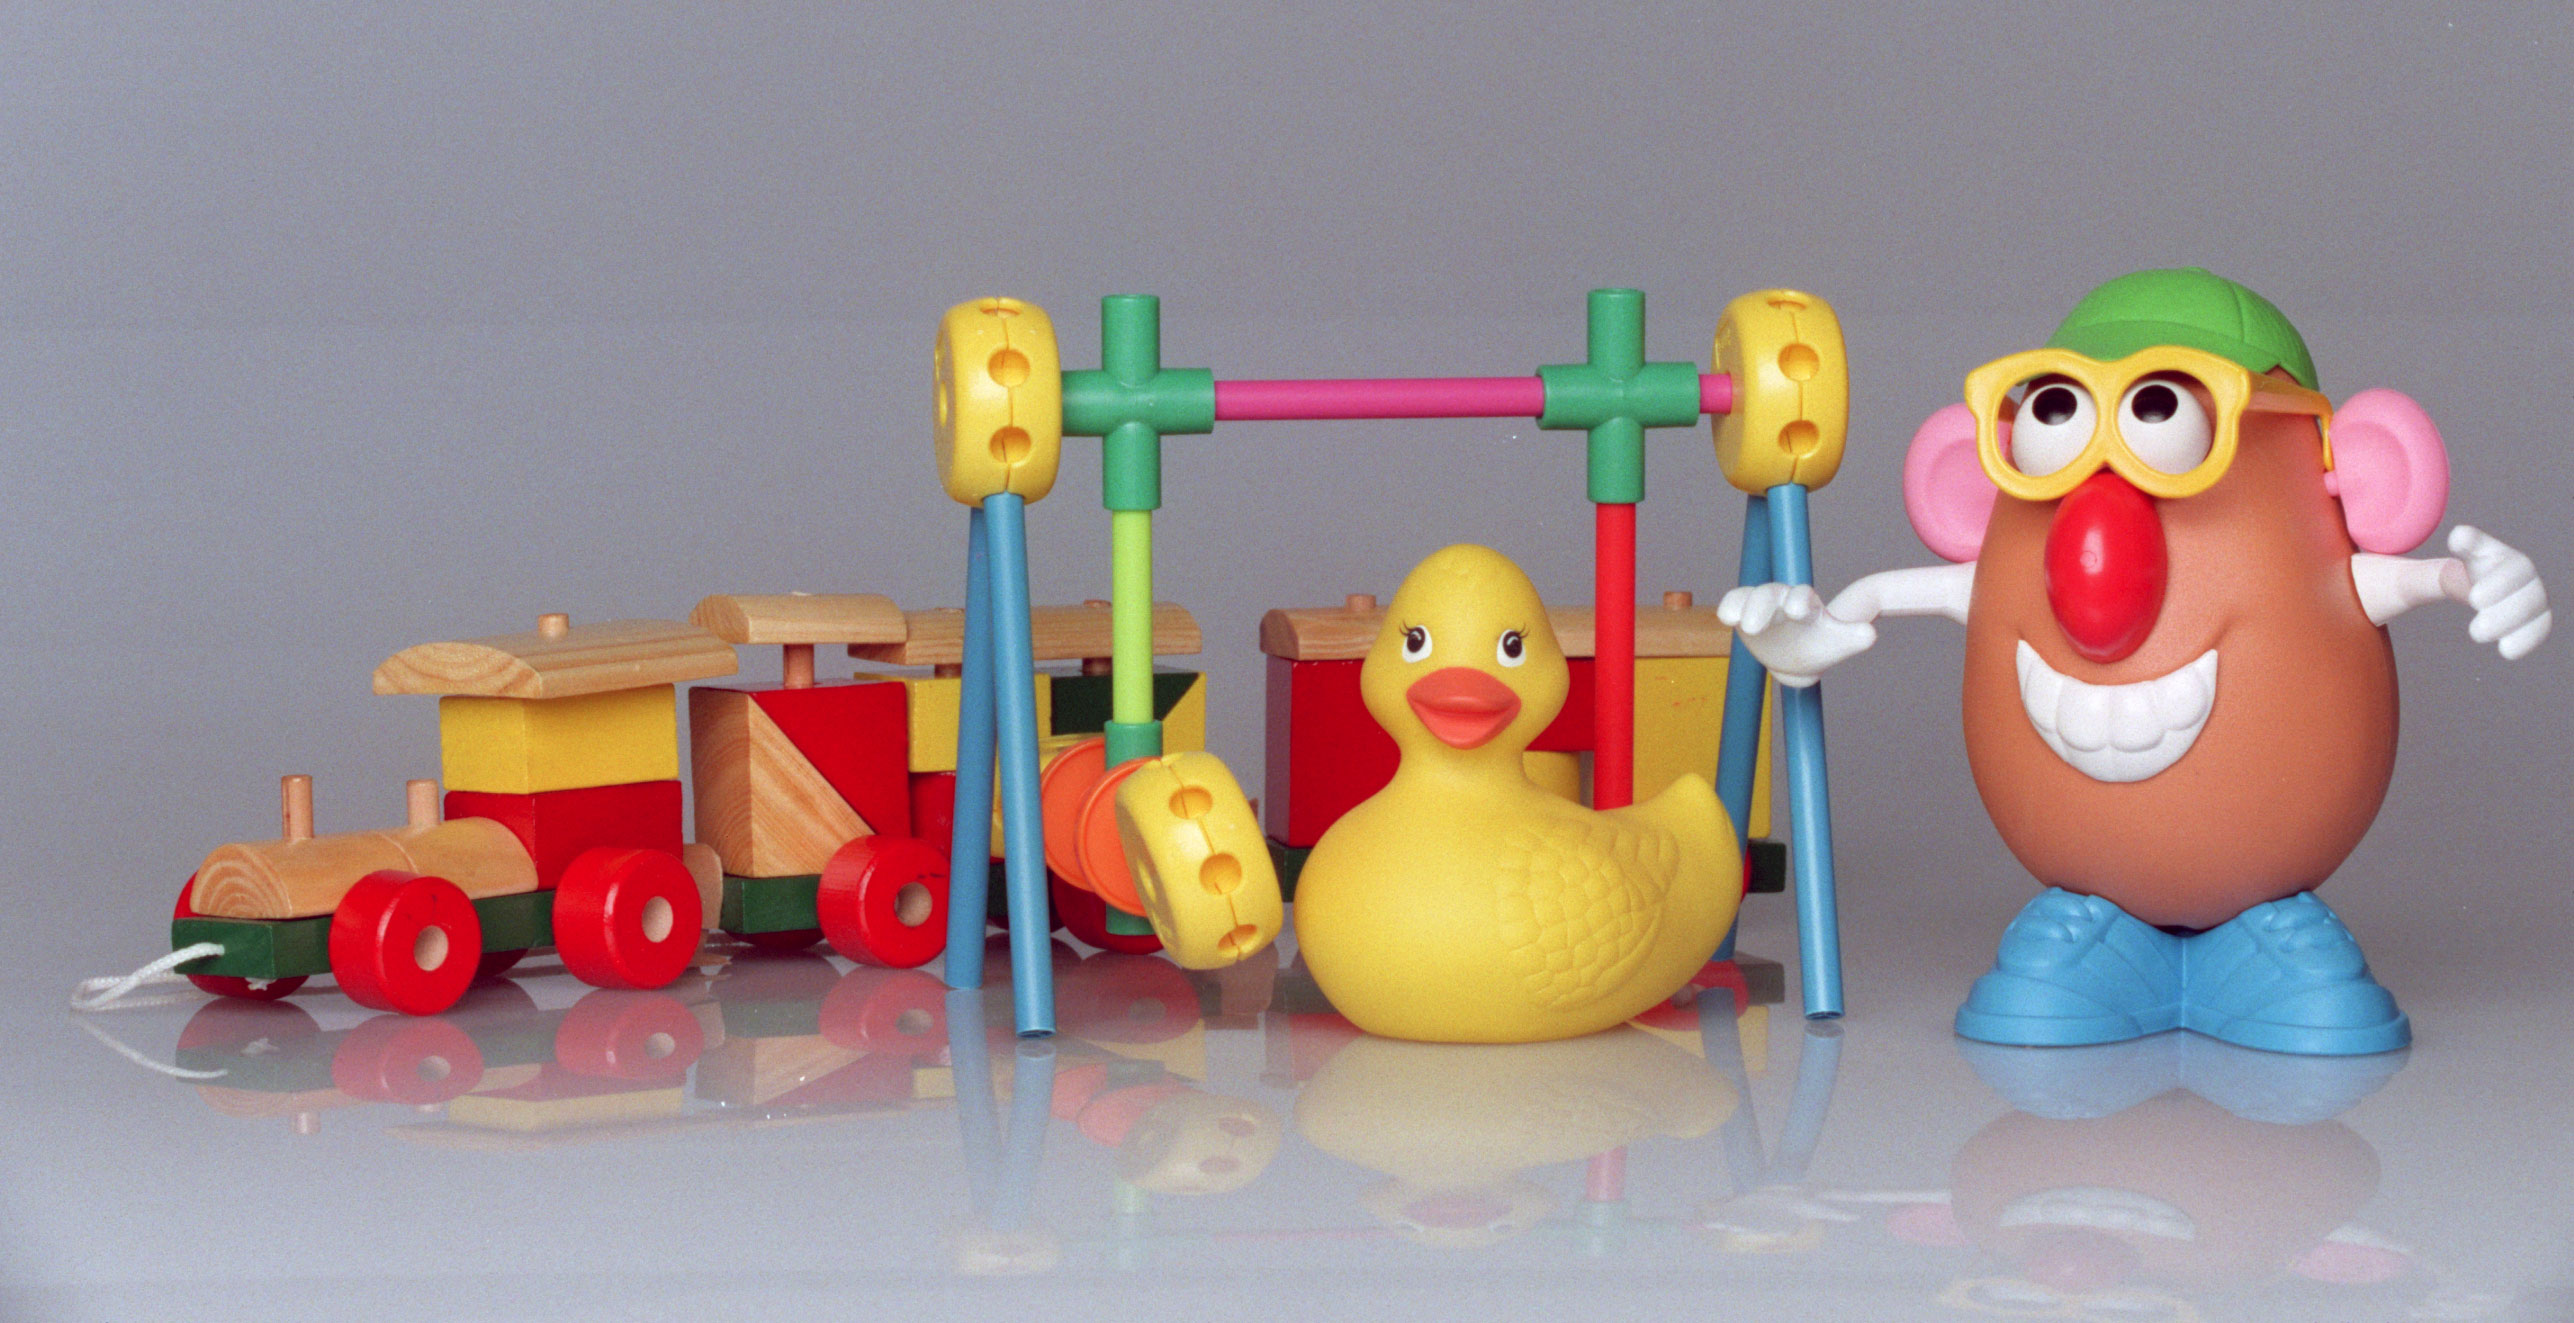 Wooden train, tinker toys, rubber ducky, and Mr. Potato Head